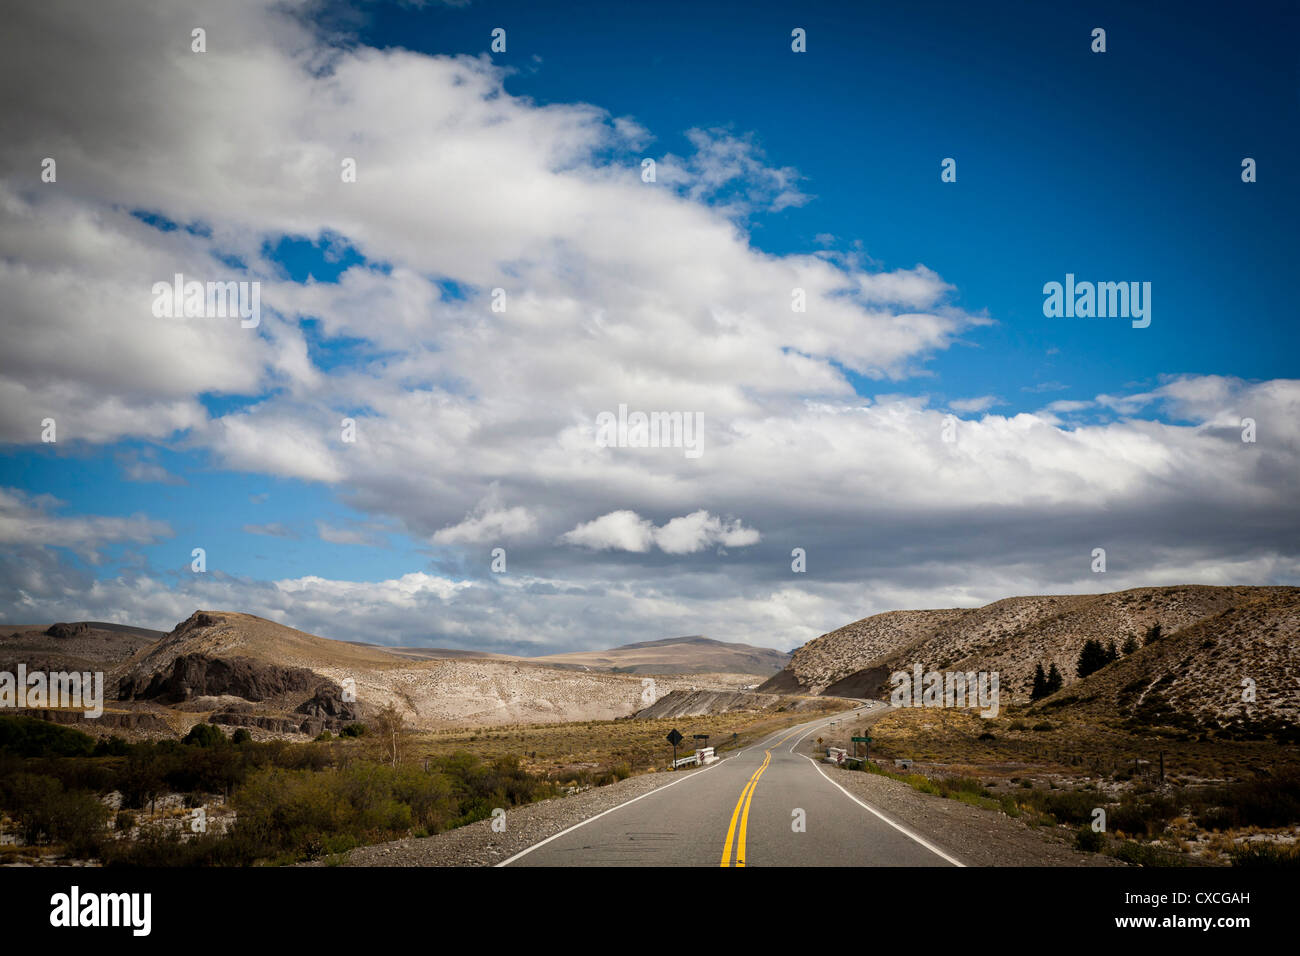 View over Ruta 40, Patagonia, Argentina. - Stock Image